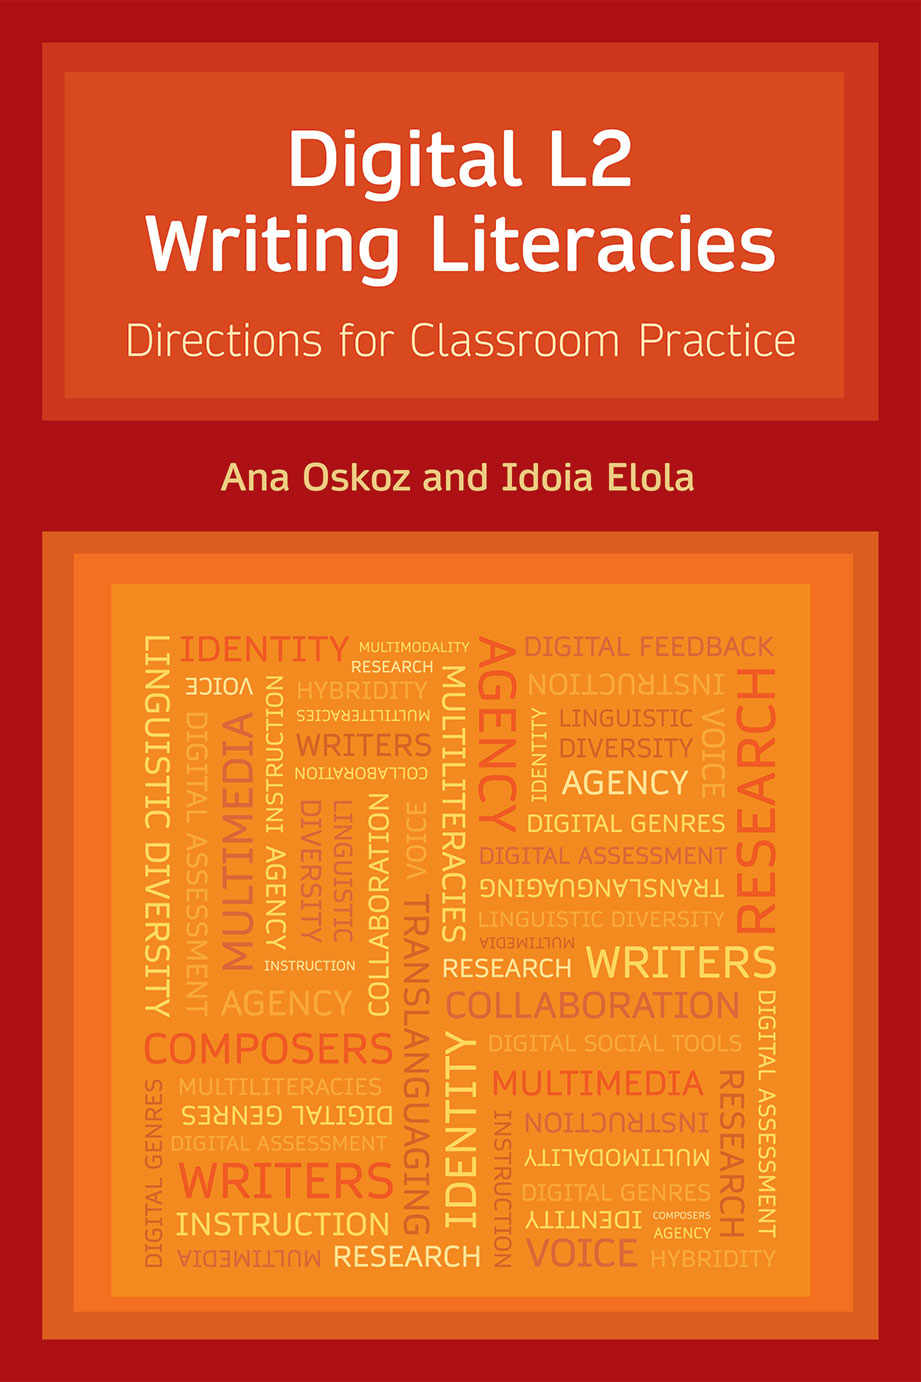 Digital L2 Writing Literacies